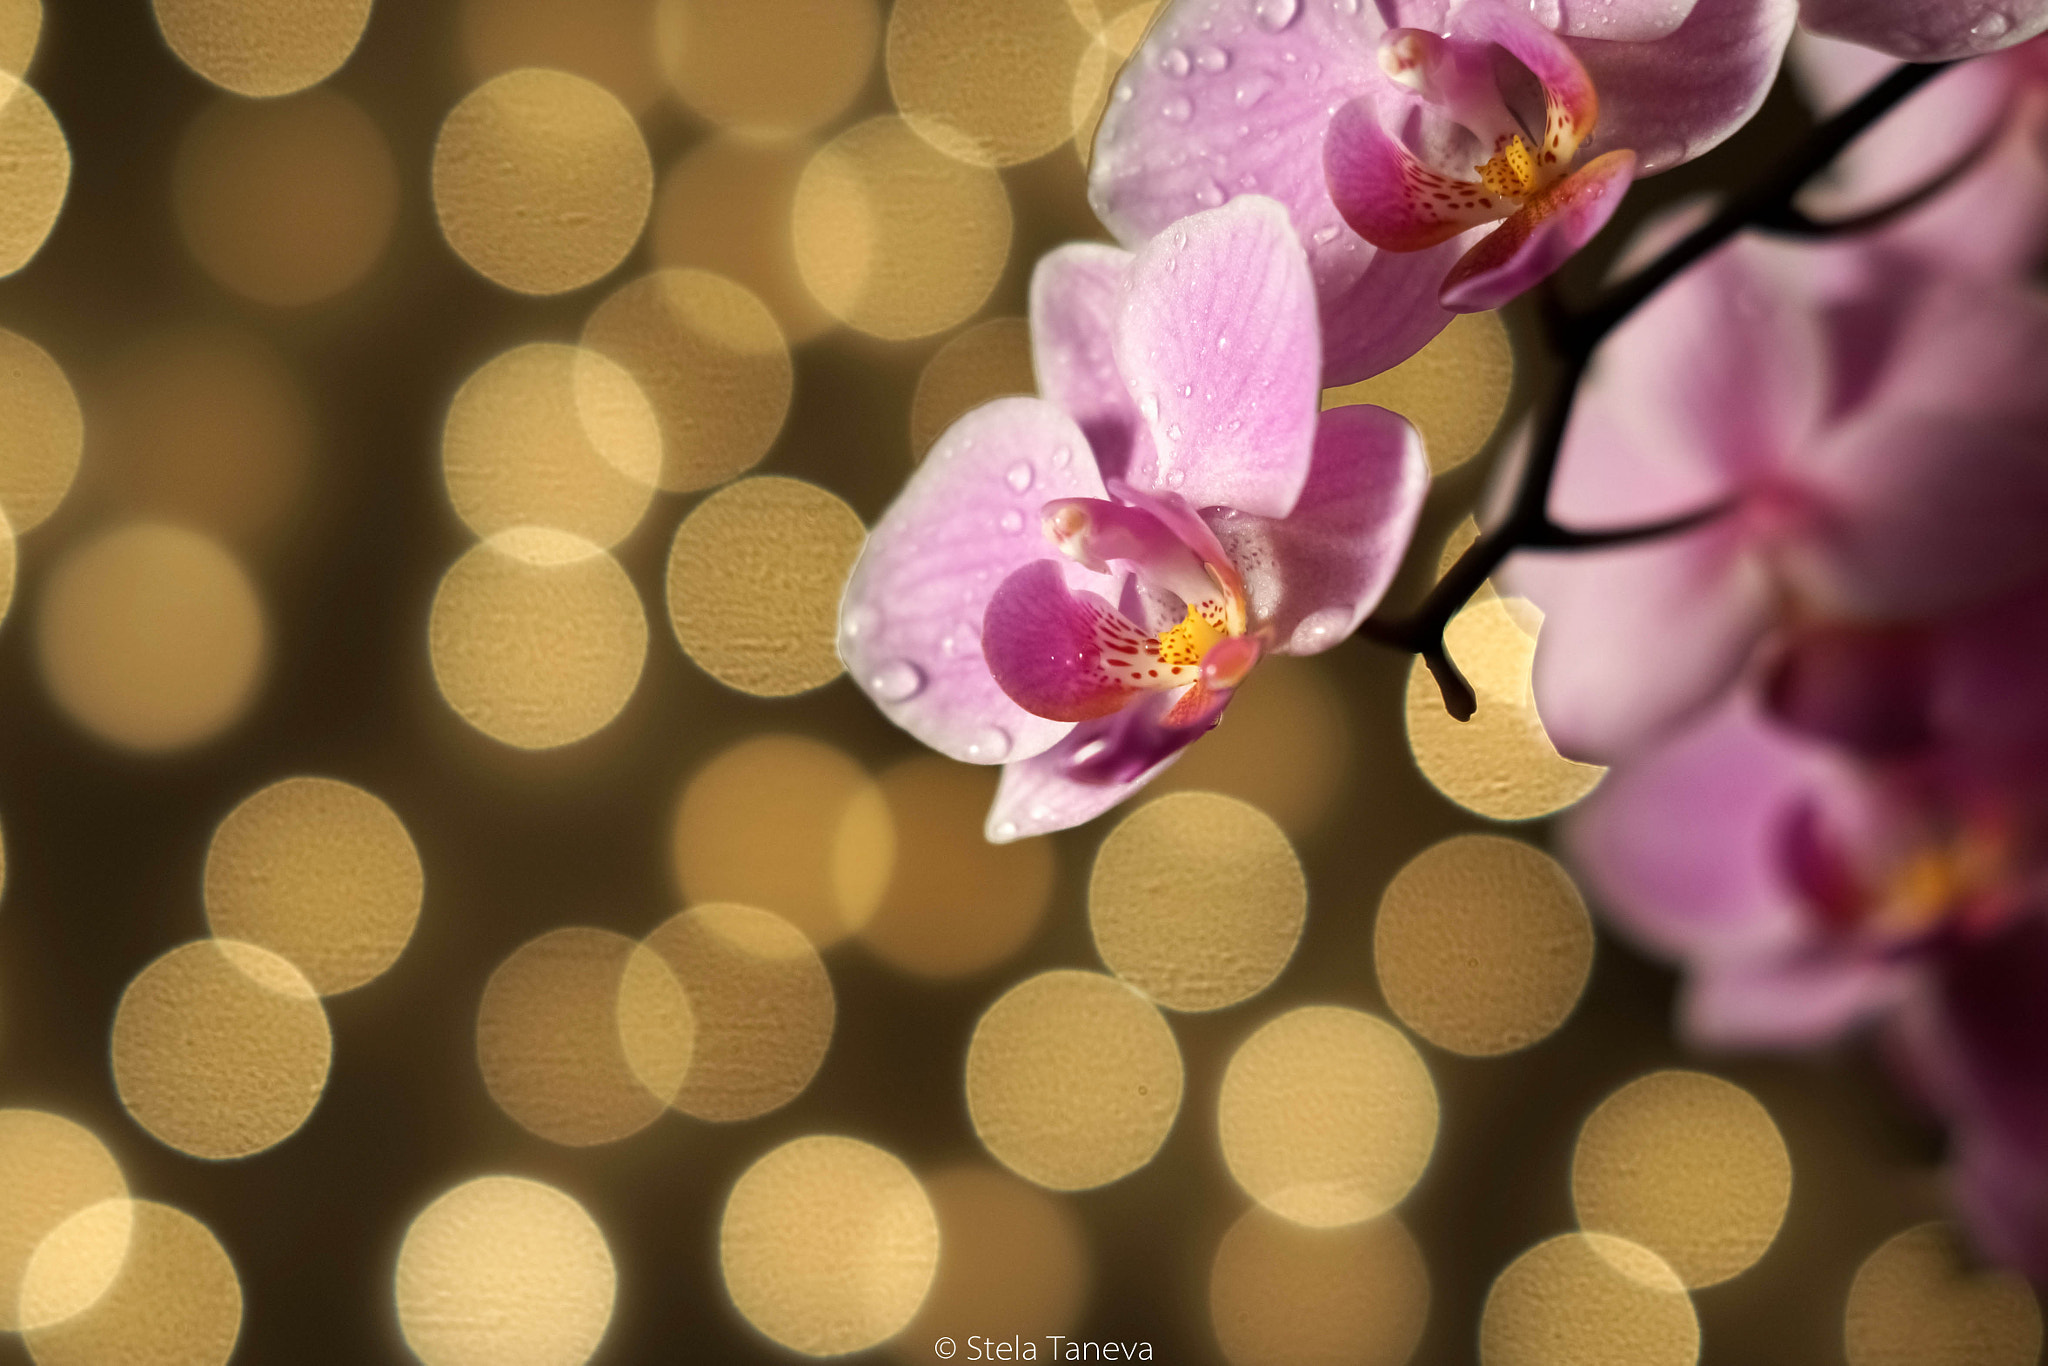 Photograph The orchid by Stela Taneva on 500px